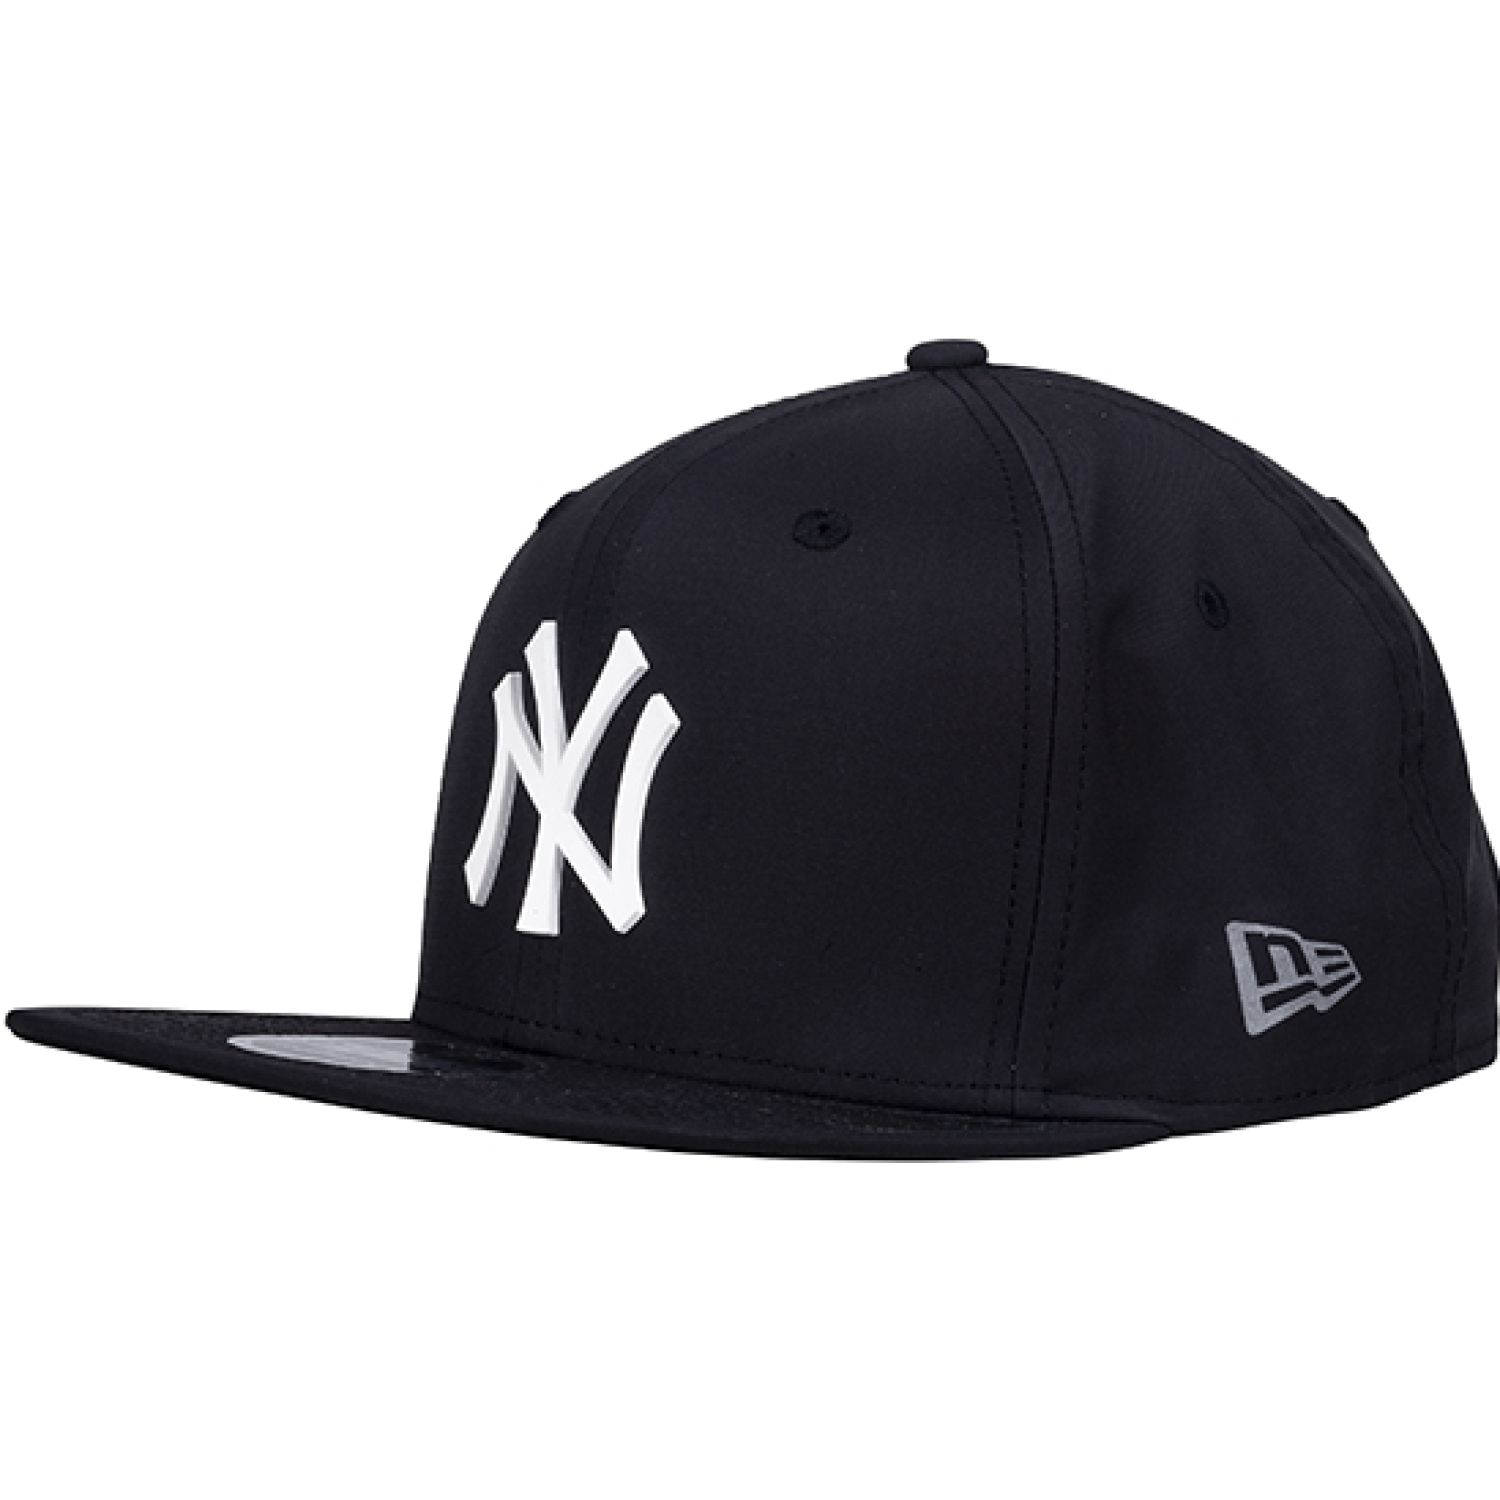 NEW ERA 950 of rain collection neyyan black Negro Chullos y Gorros